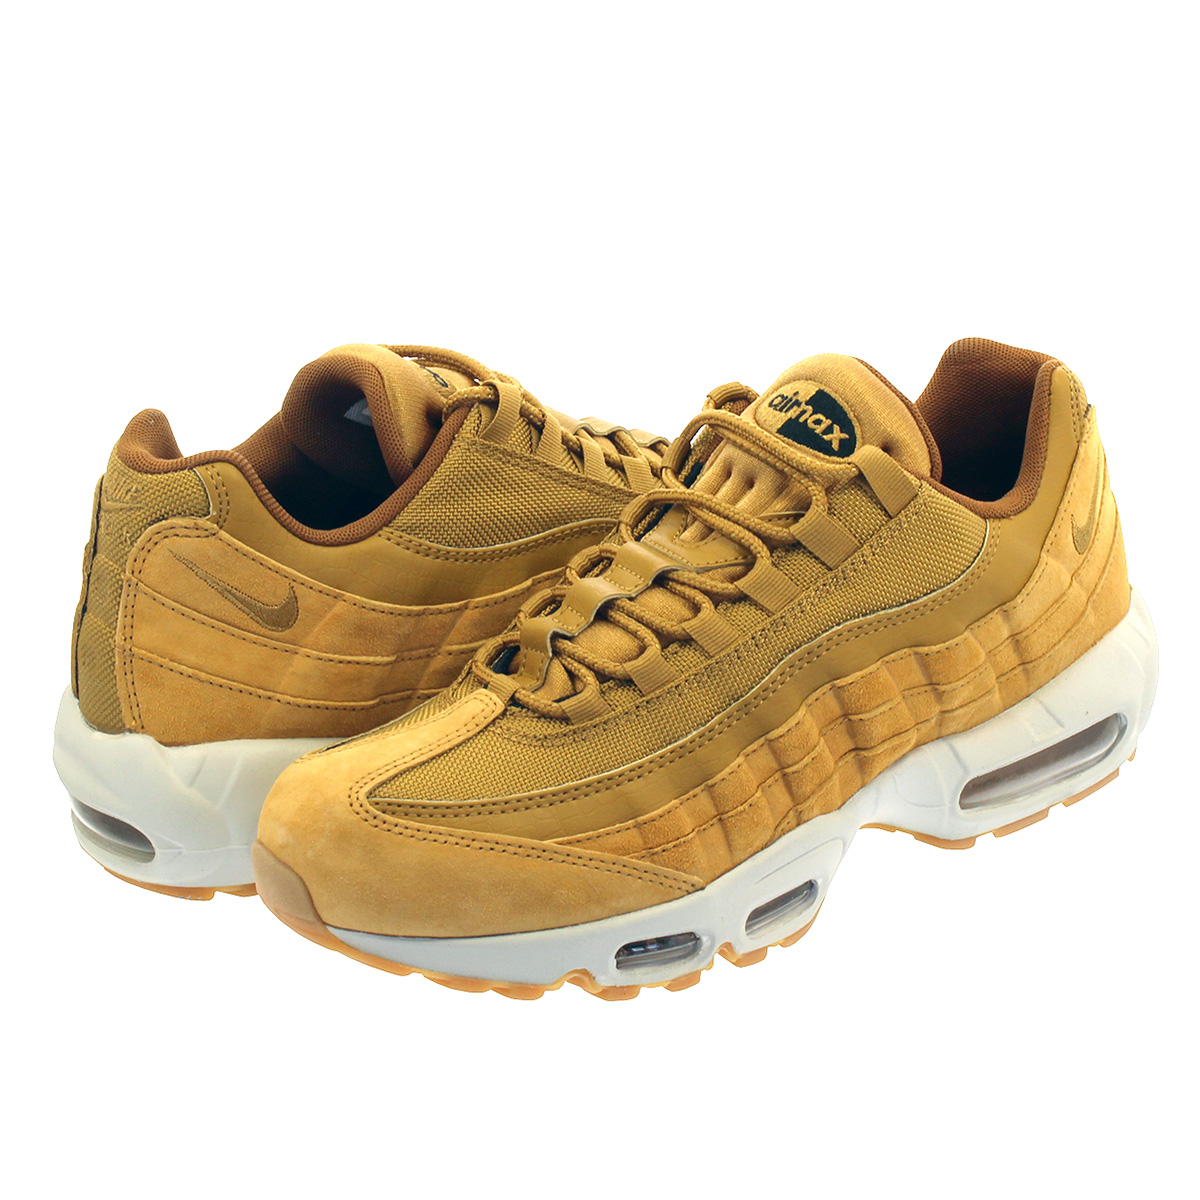 54baaabb7fc LOWTEX BIG-SMALL SHOP: NIKE AIR MAX 95 SE나이키 에어 막스 95 SE ...